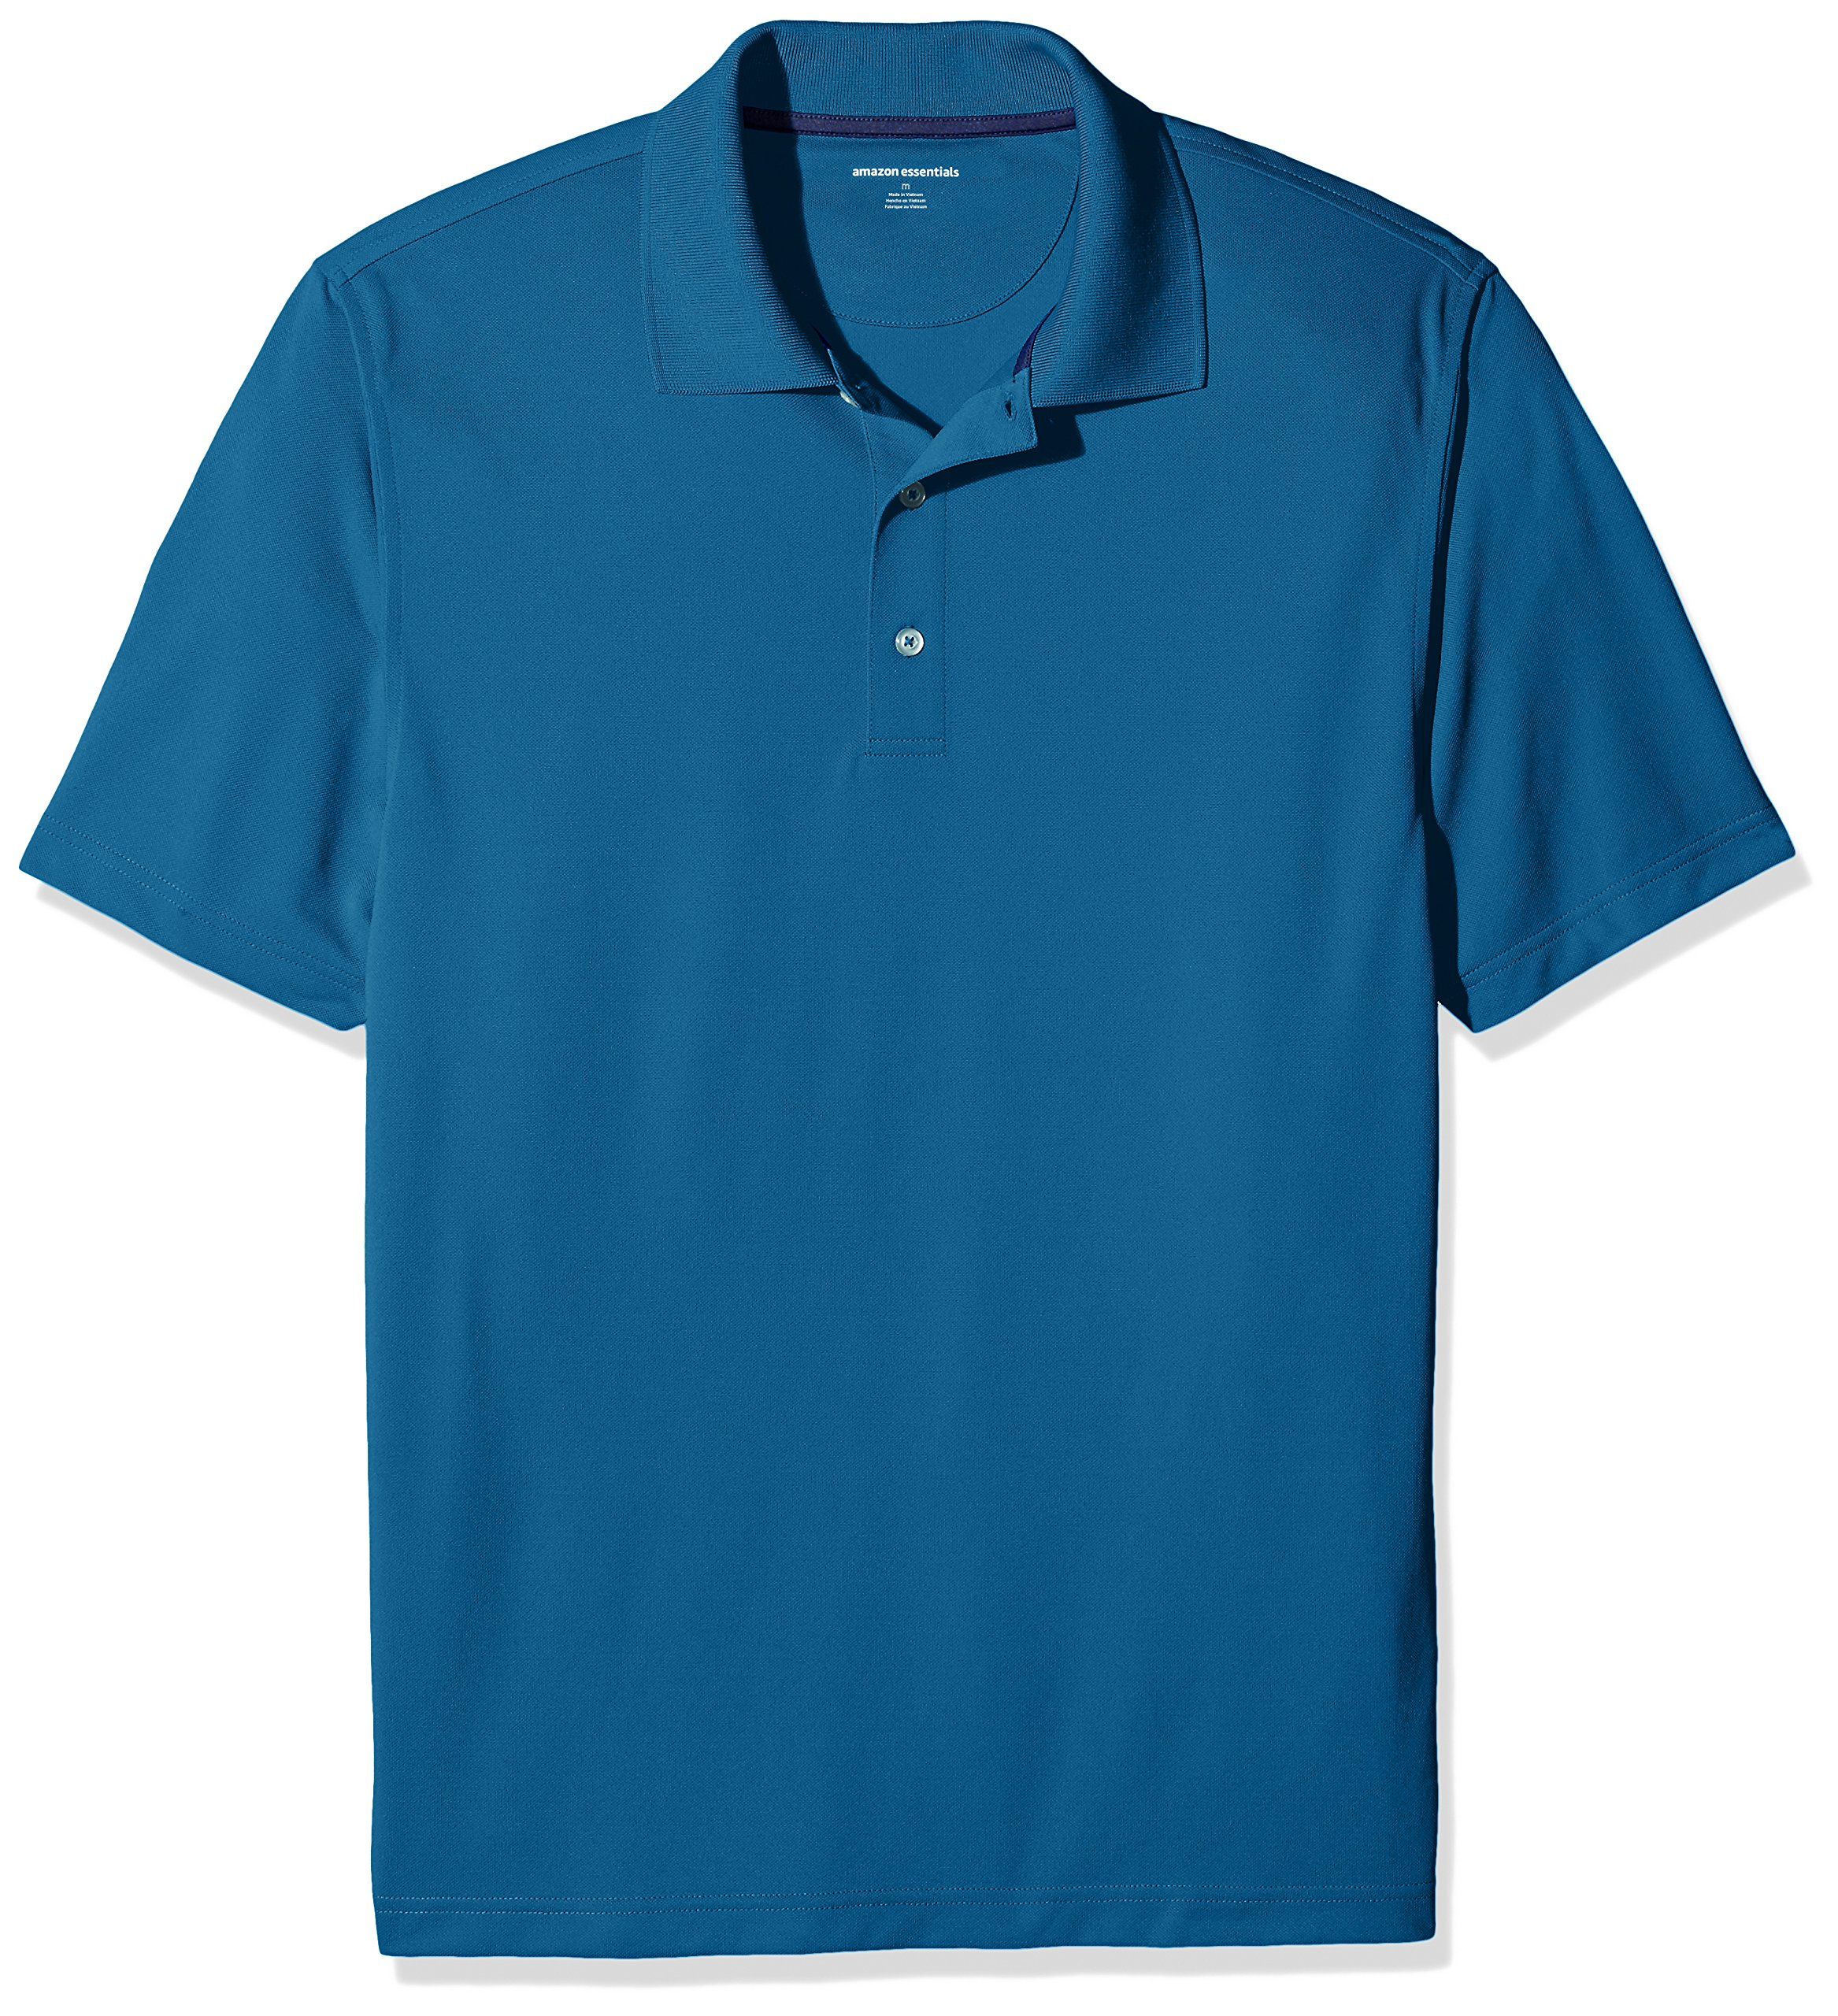 Amazon Essentials Men's Regular-Fit Quick-Dry Golf Polo Shirt, Deep Teal, XX-Large by Amazon Essentials